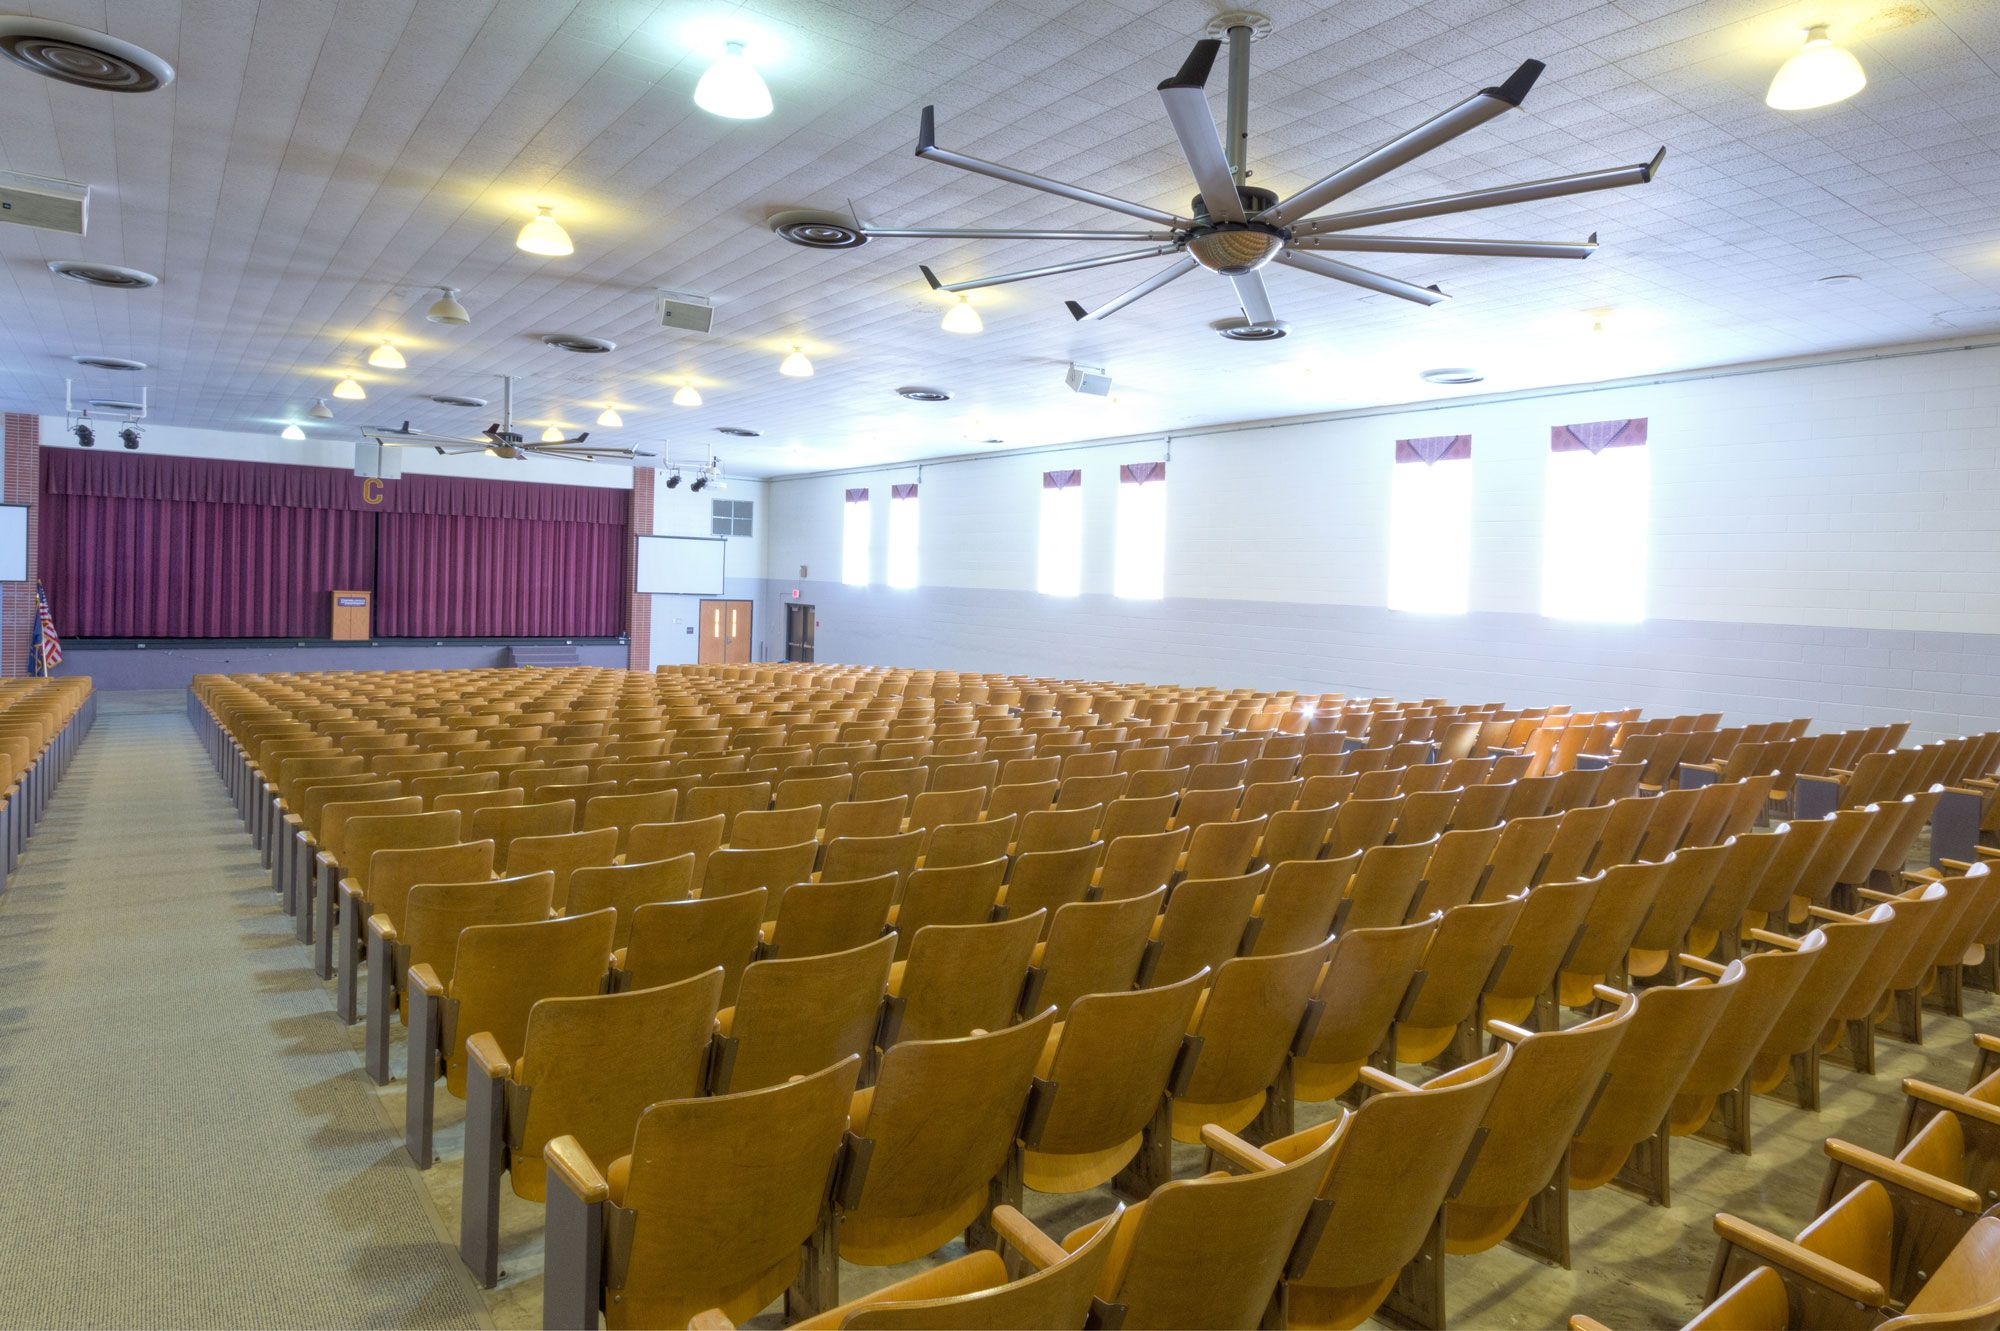 Large Low Speed Ceiling Fans in K12 School Auditoriums